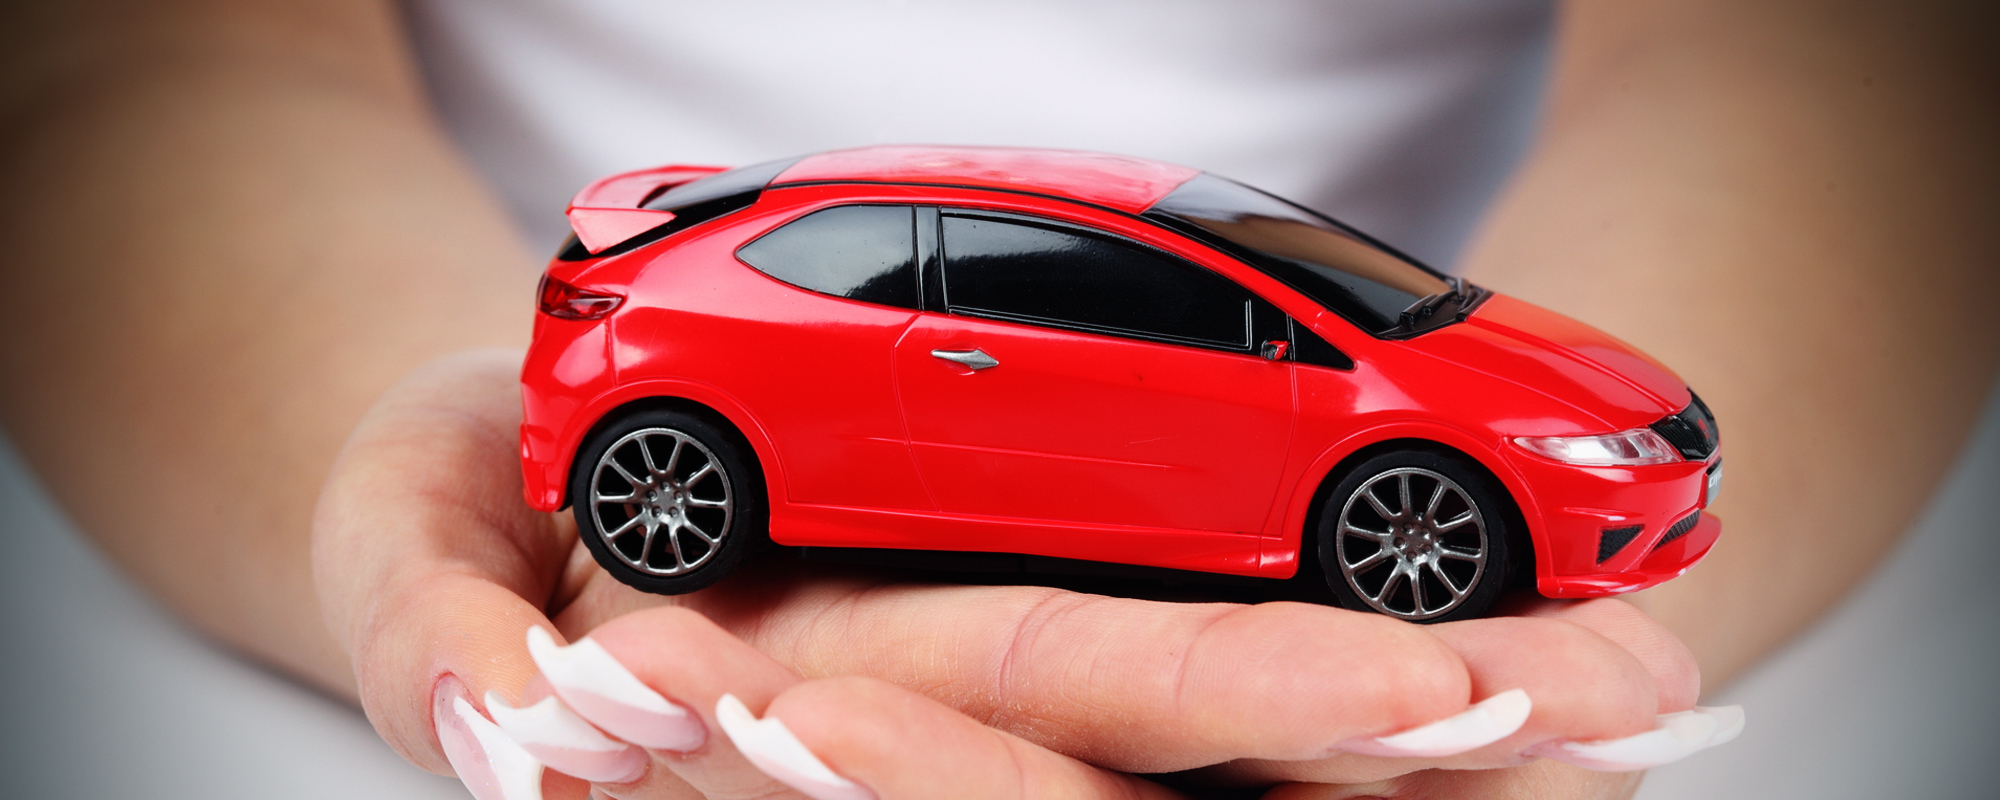 Mantain a smooth ride: <a href='car-care.php'>Car Care Tips</a>.